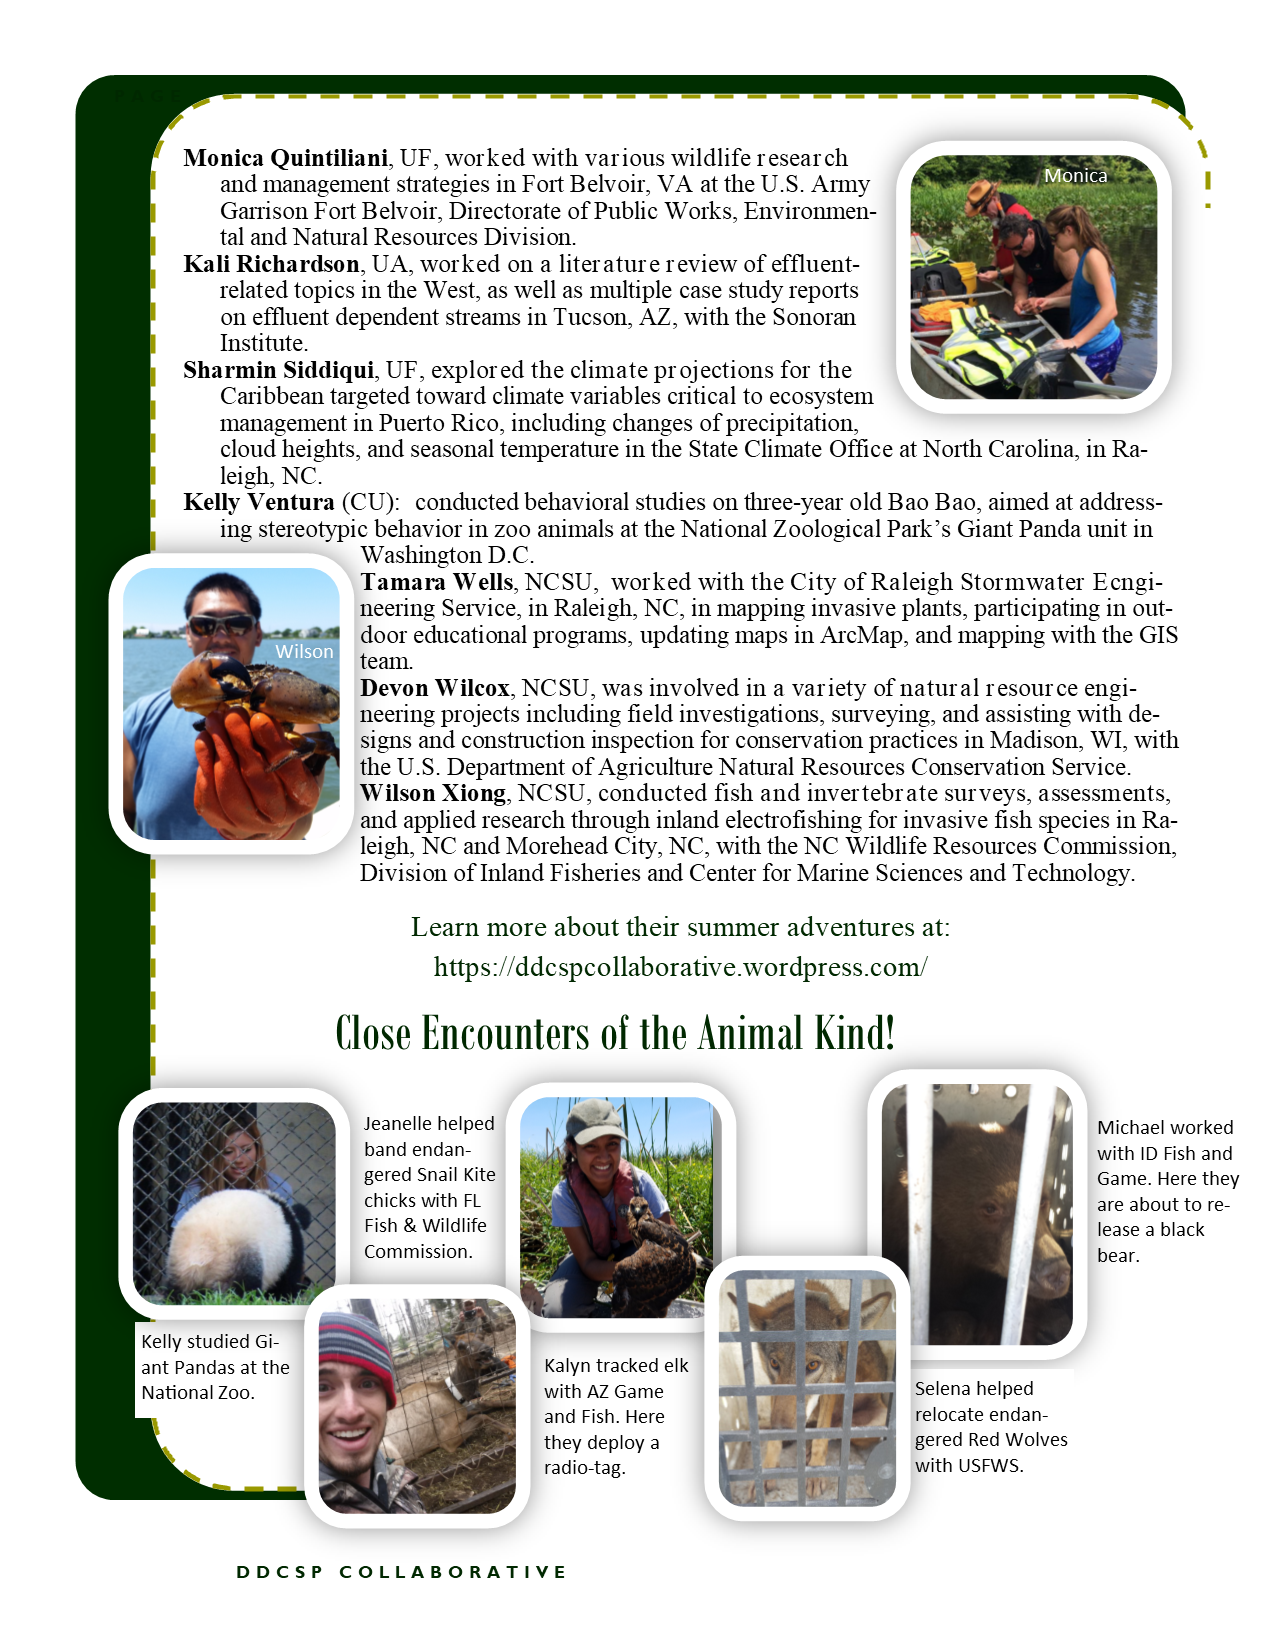 DDCSP Newsletter Summer&Fall 2016 Page6.png